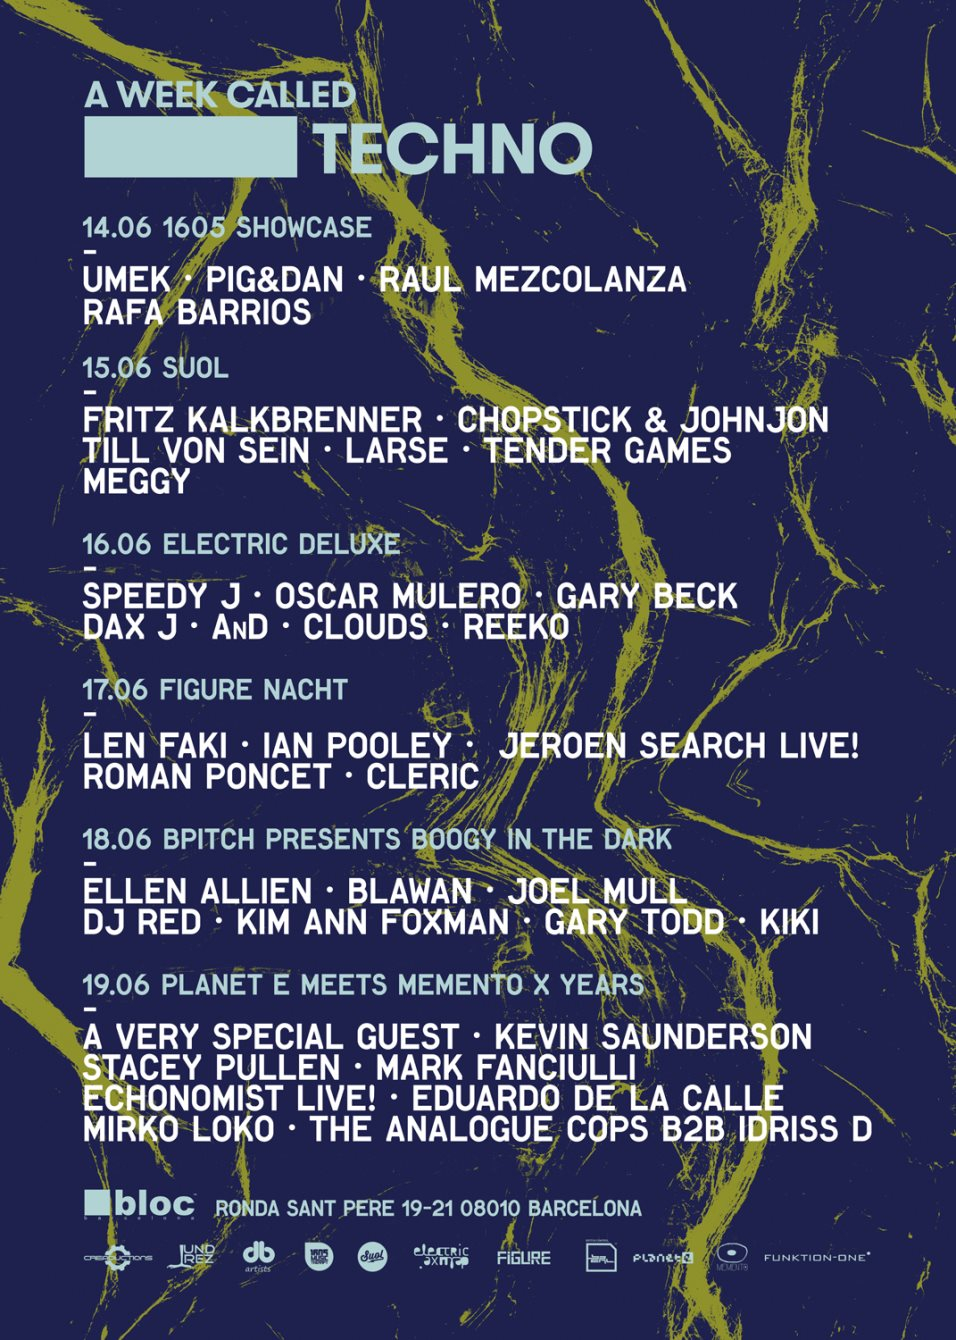 A Week Called Techno Feat. 1605 Showcase - Flyer back